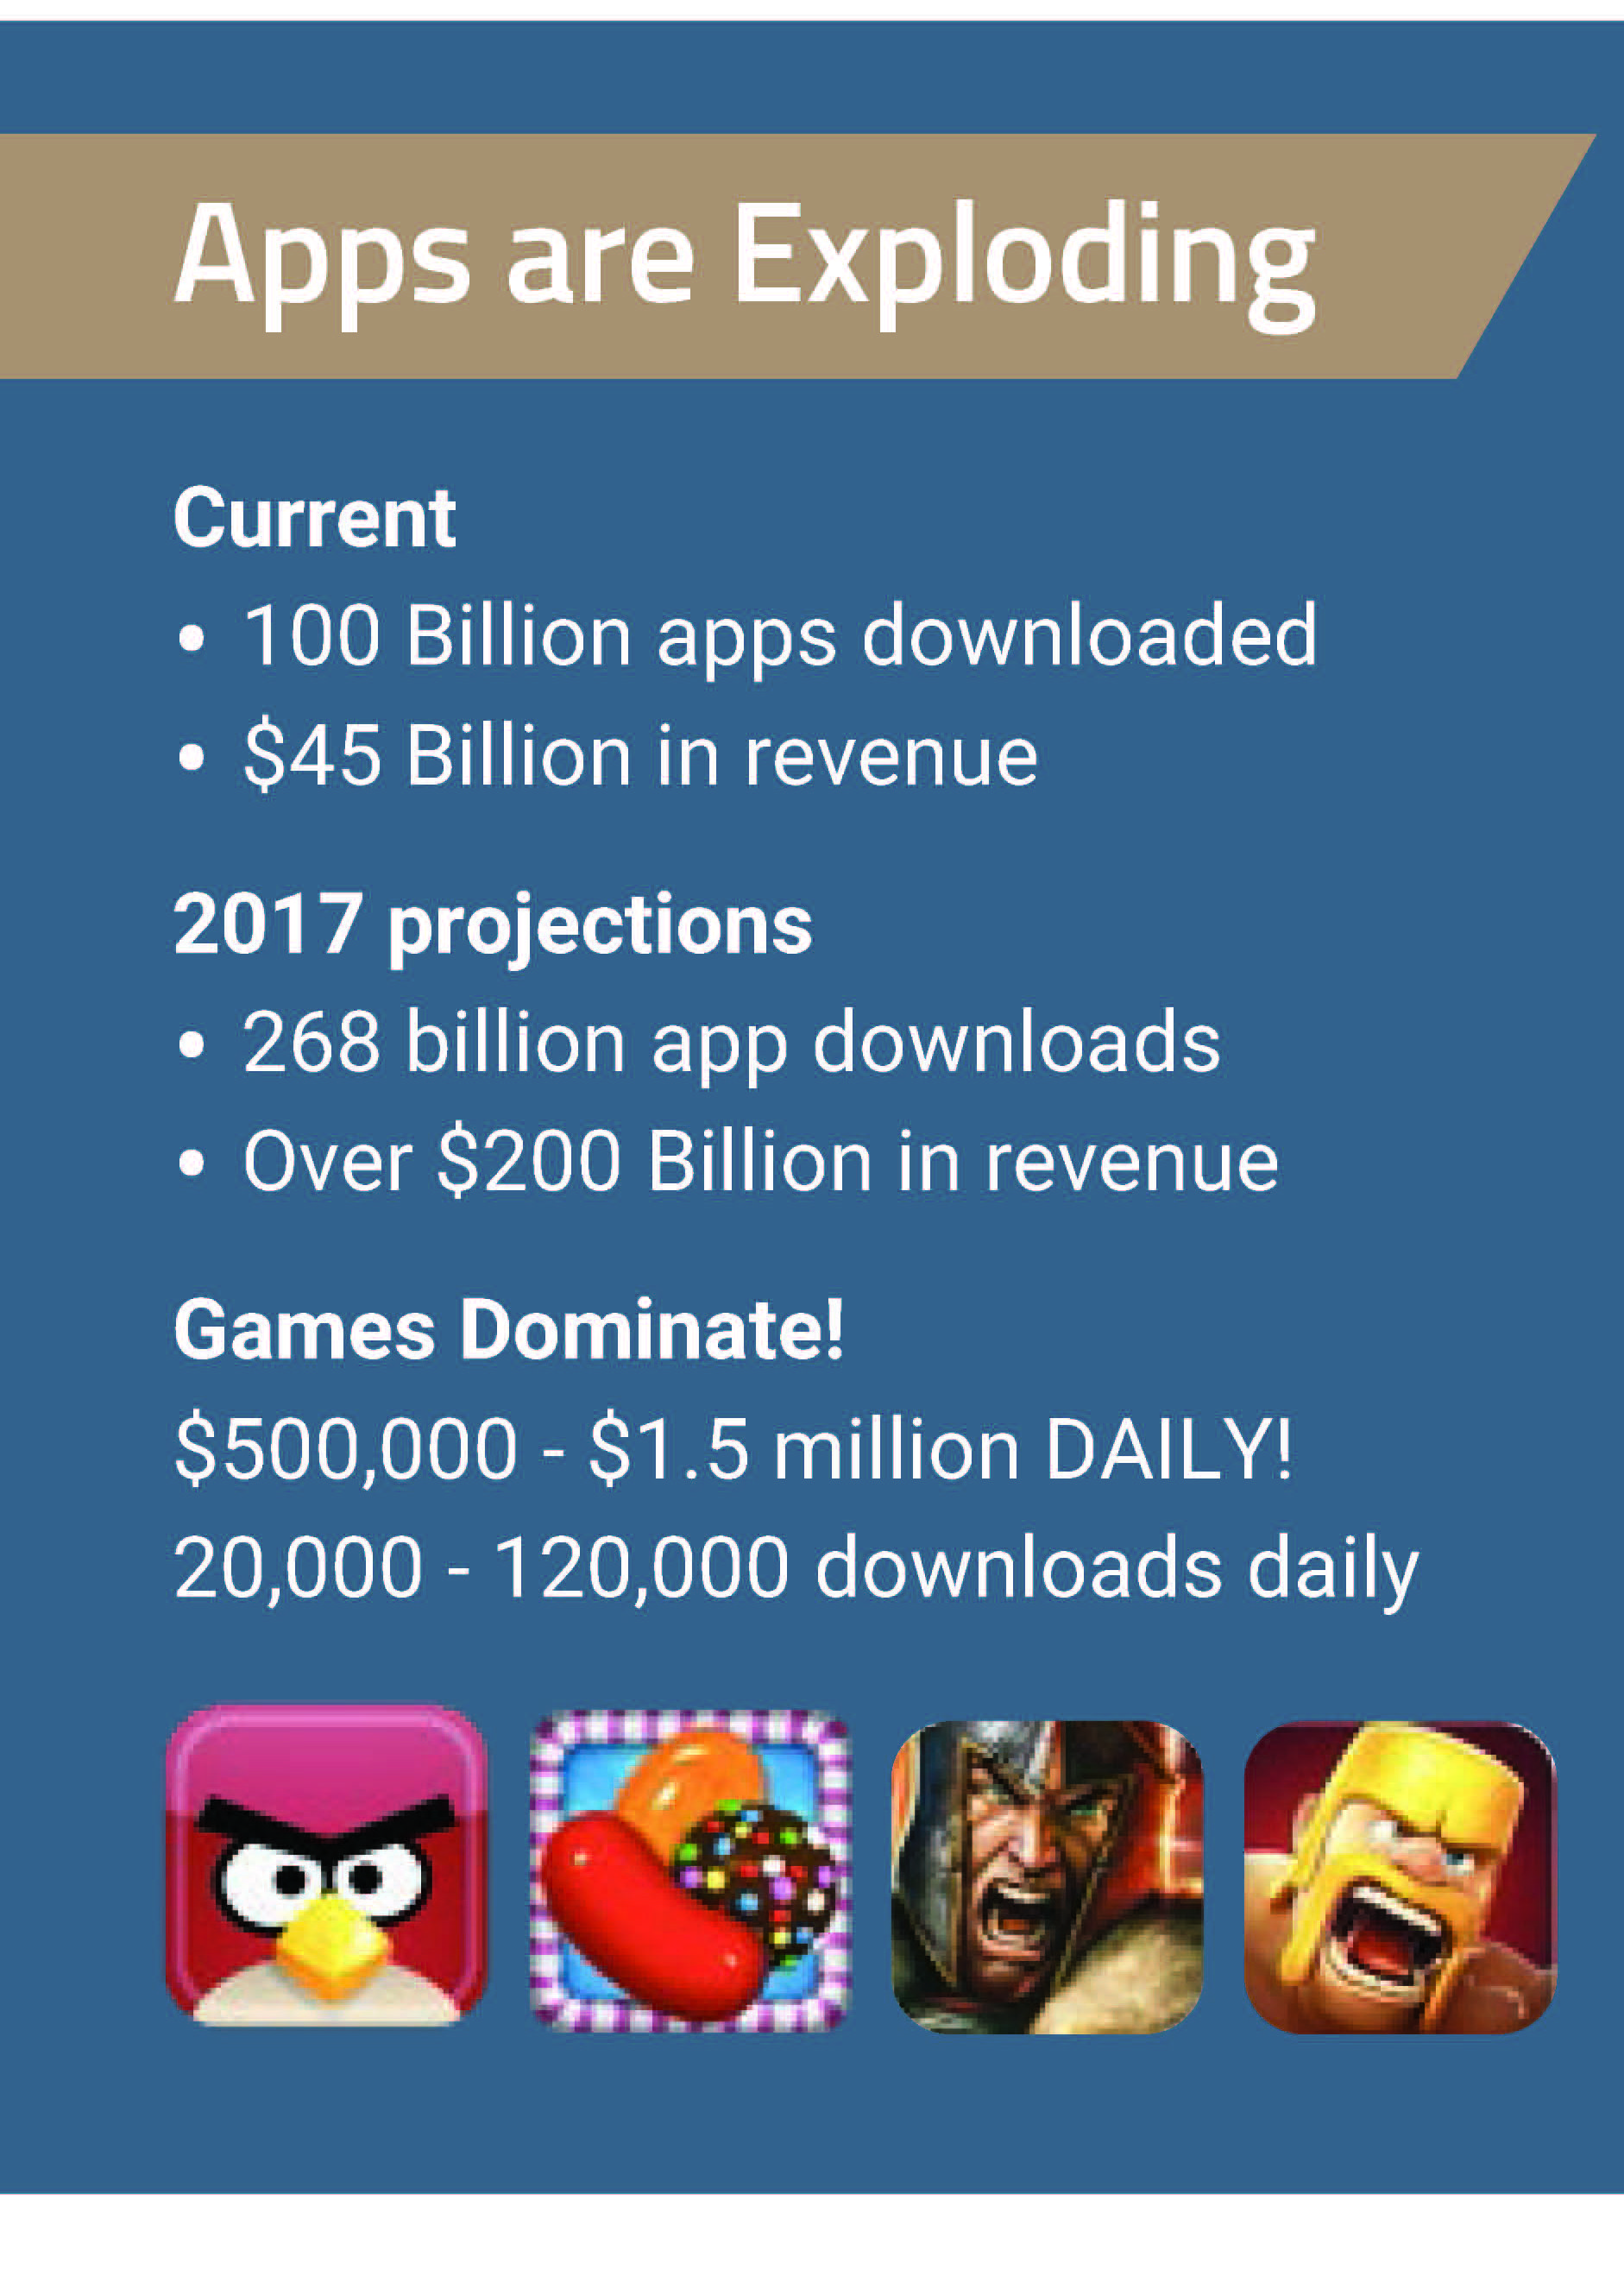 United Games the next Giant to Launch in the App Stores, be one of the first to download for Free when the new sports season starts! Contact me for your unique code to access the registration form..  #unitedgames #unitedgamesmarketing #unitedgamesreview #unitedgamesscam #unitedgamesaffiliate Click Visit to watch a short video presentation